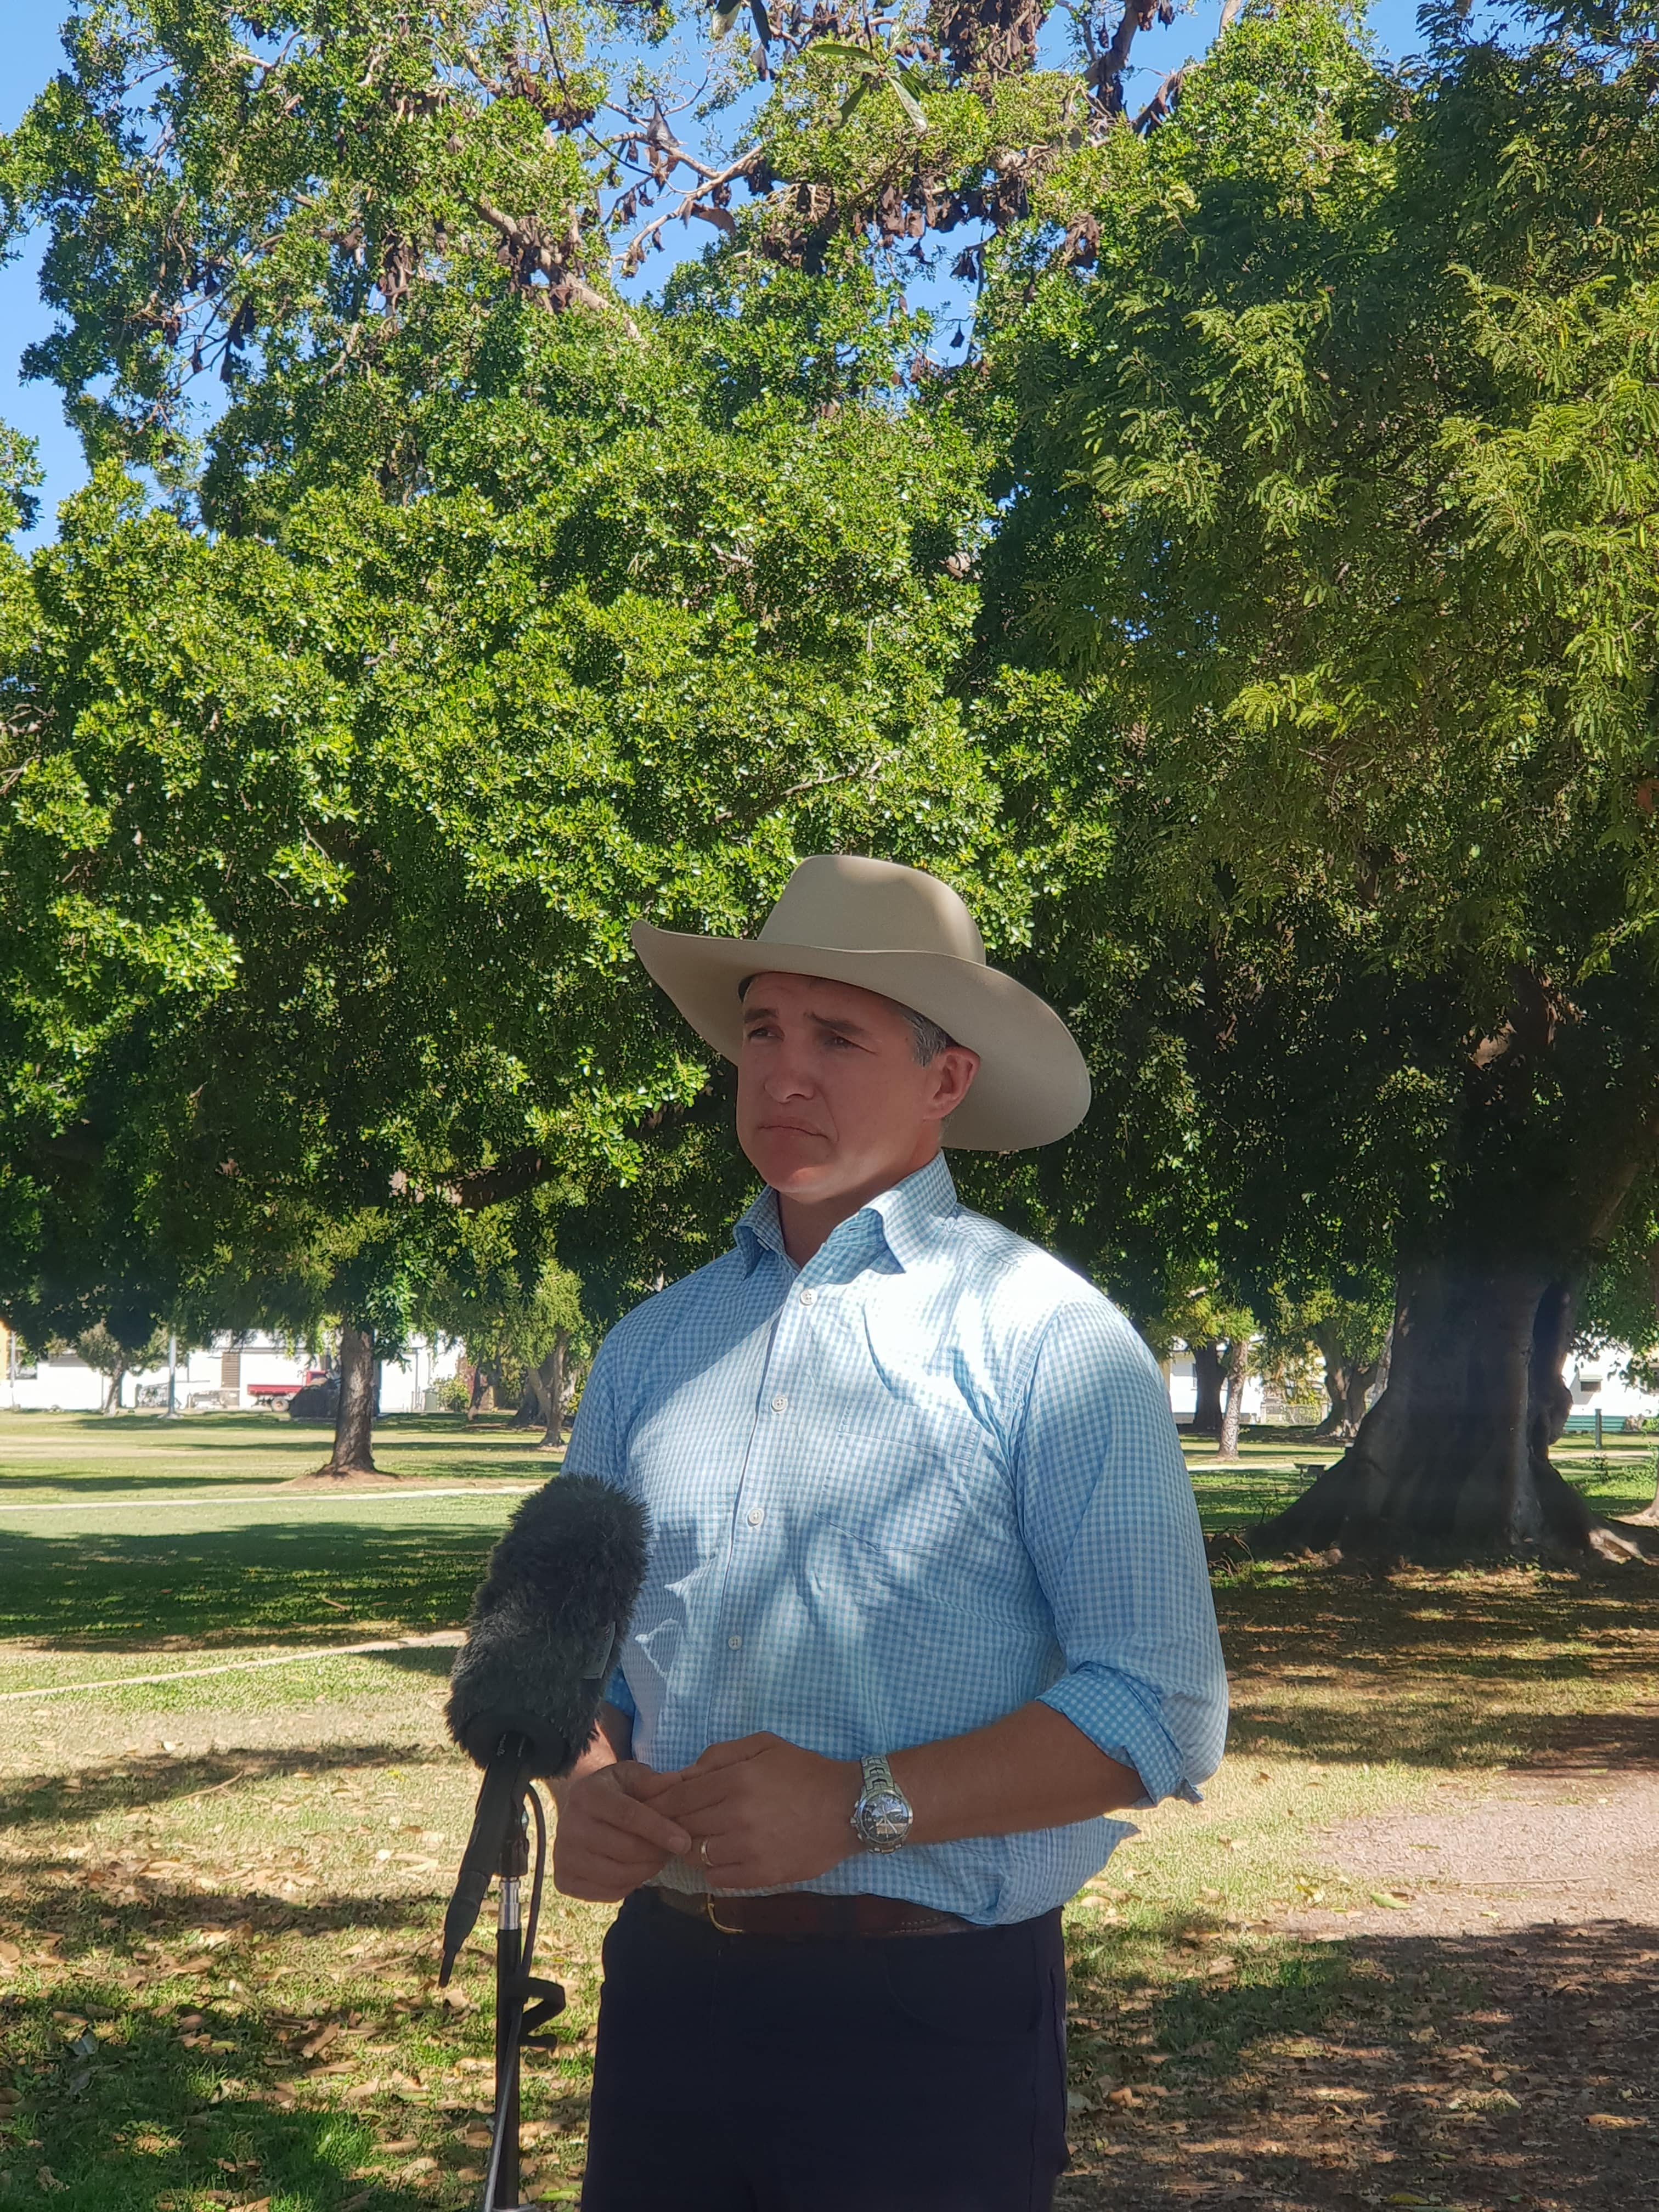 Traeger MP Robbie Katter Surounded By Bats At Lissner Park In Charters Towers 1 Min